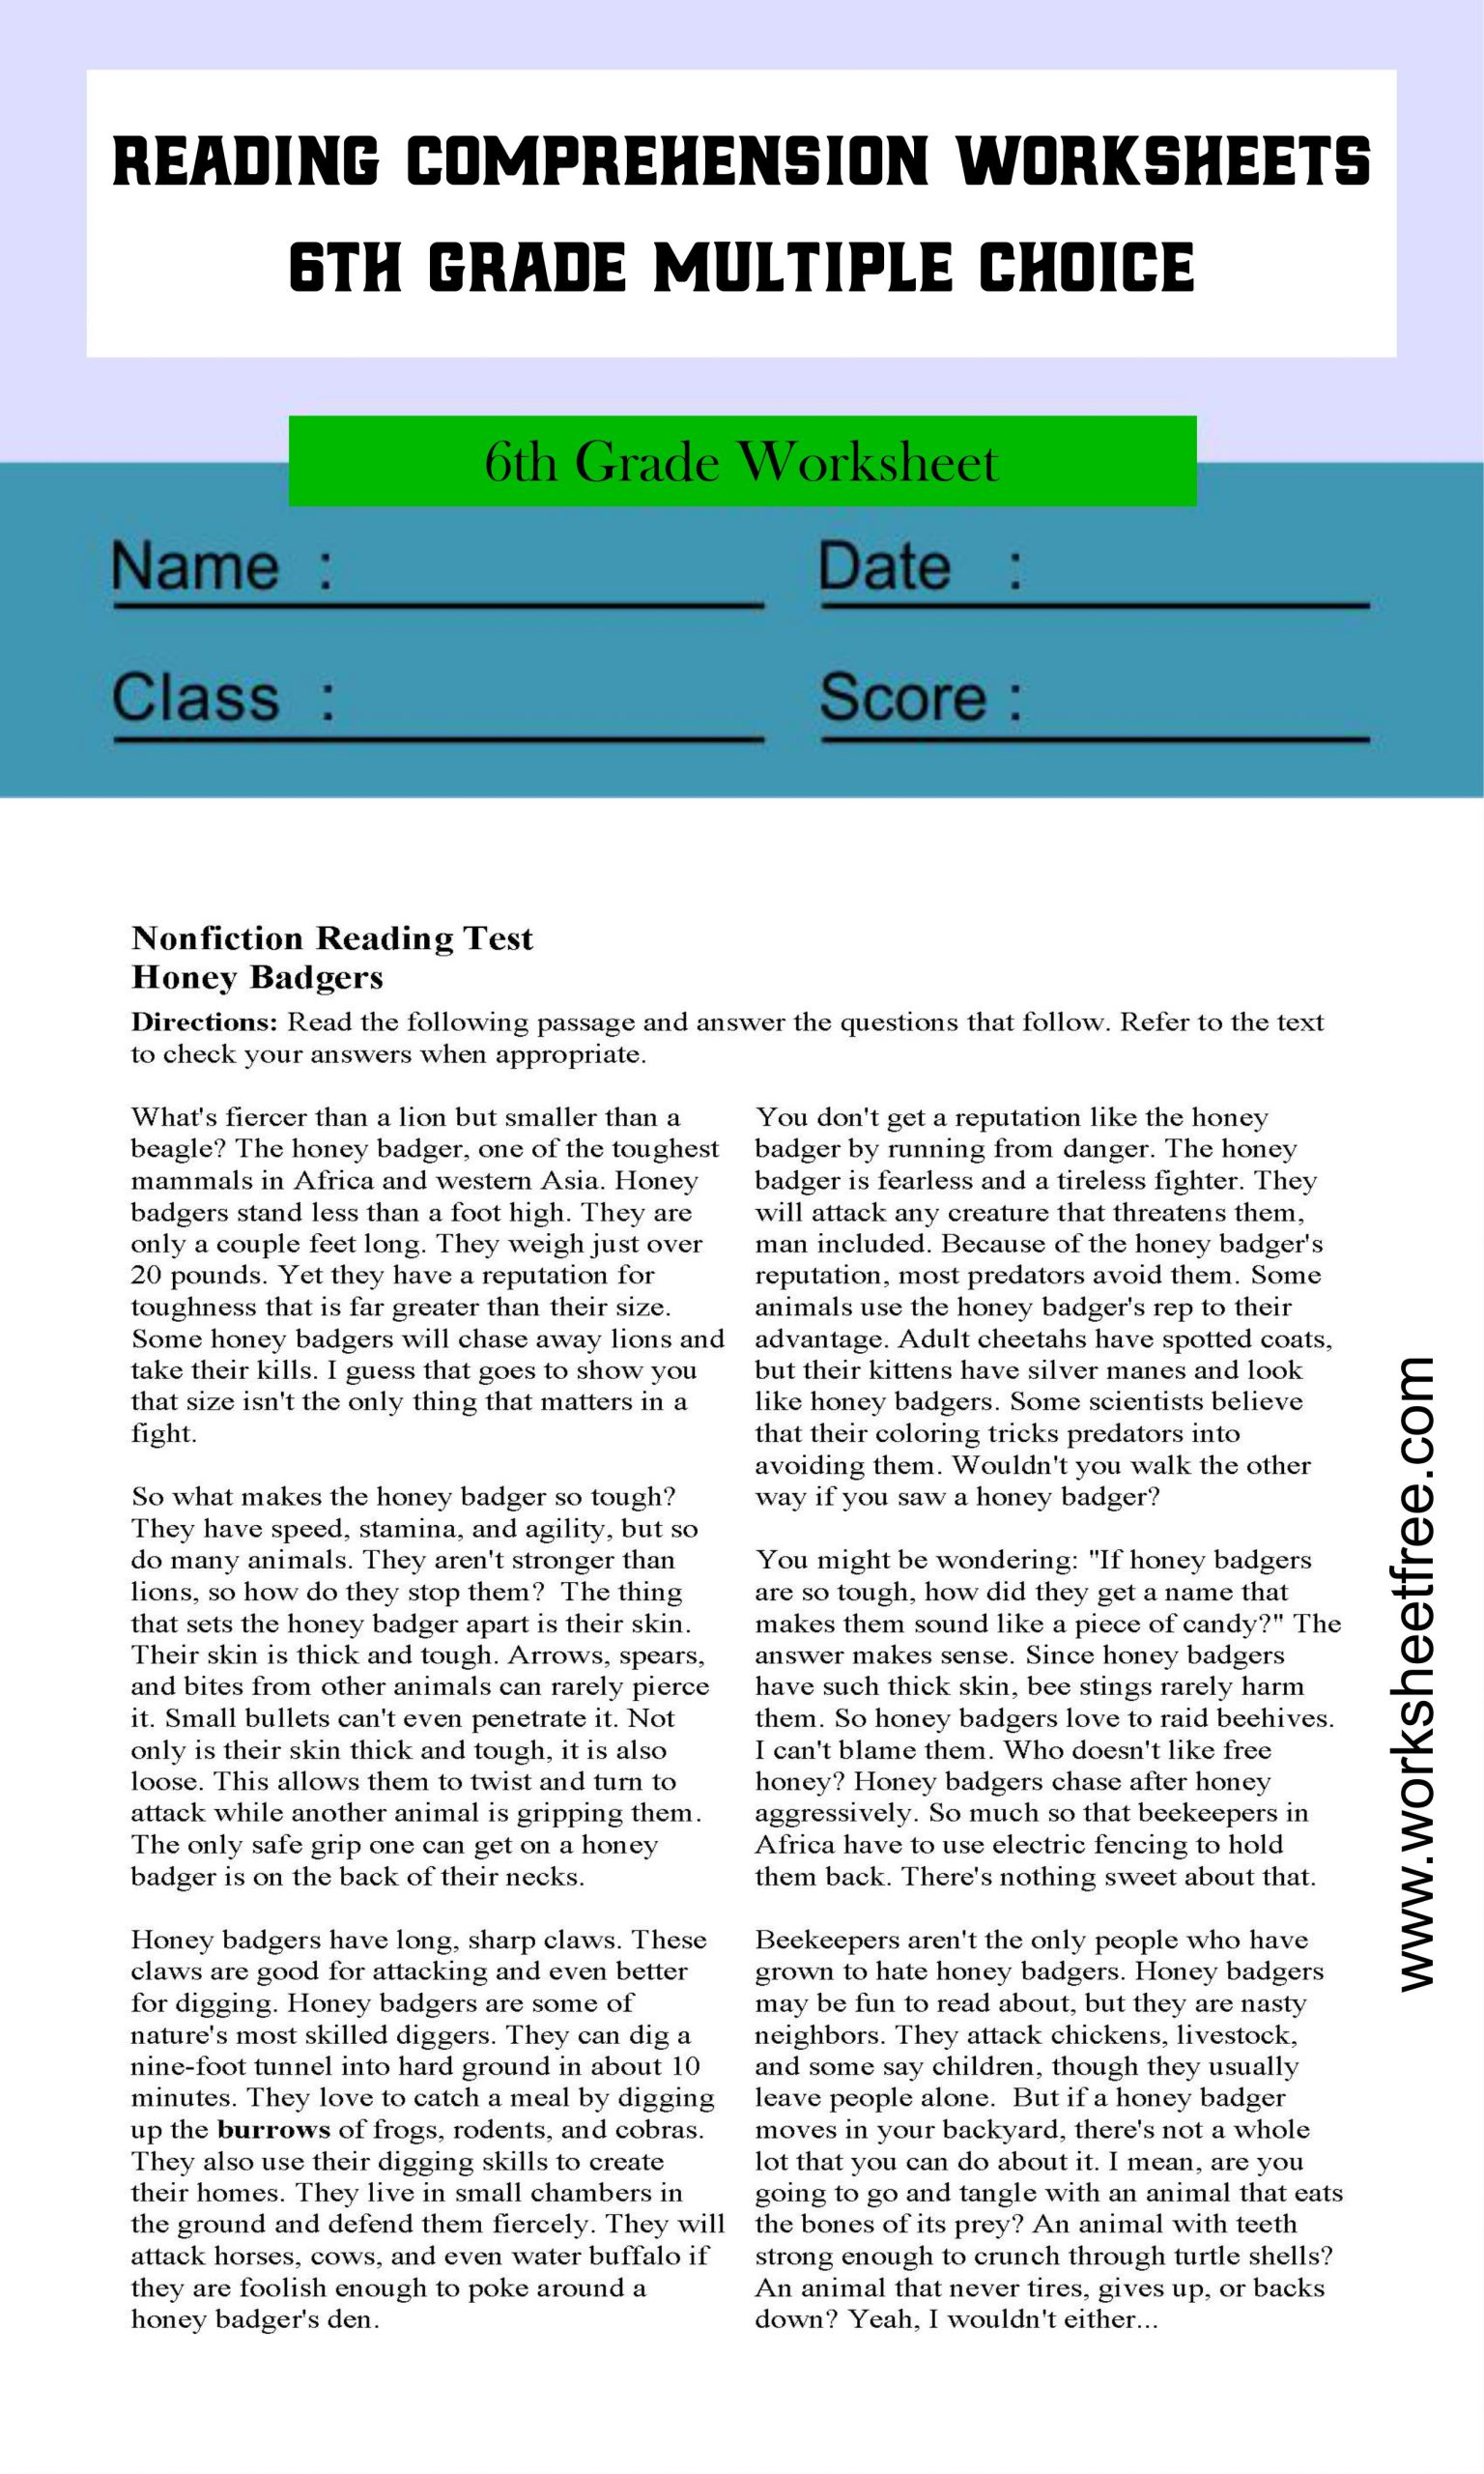 Reading Comprehension Worksheets 6th Grade Multiple Choice